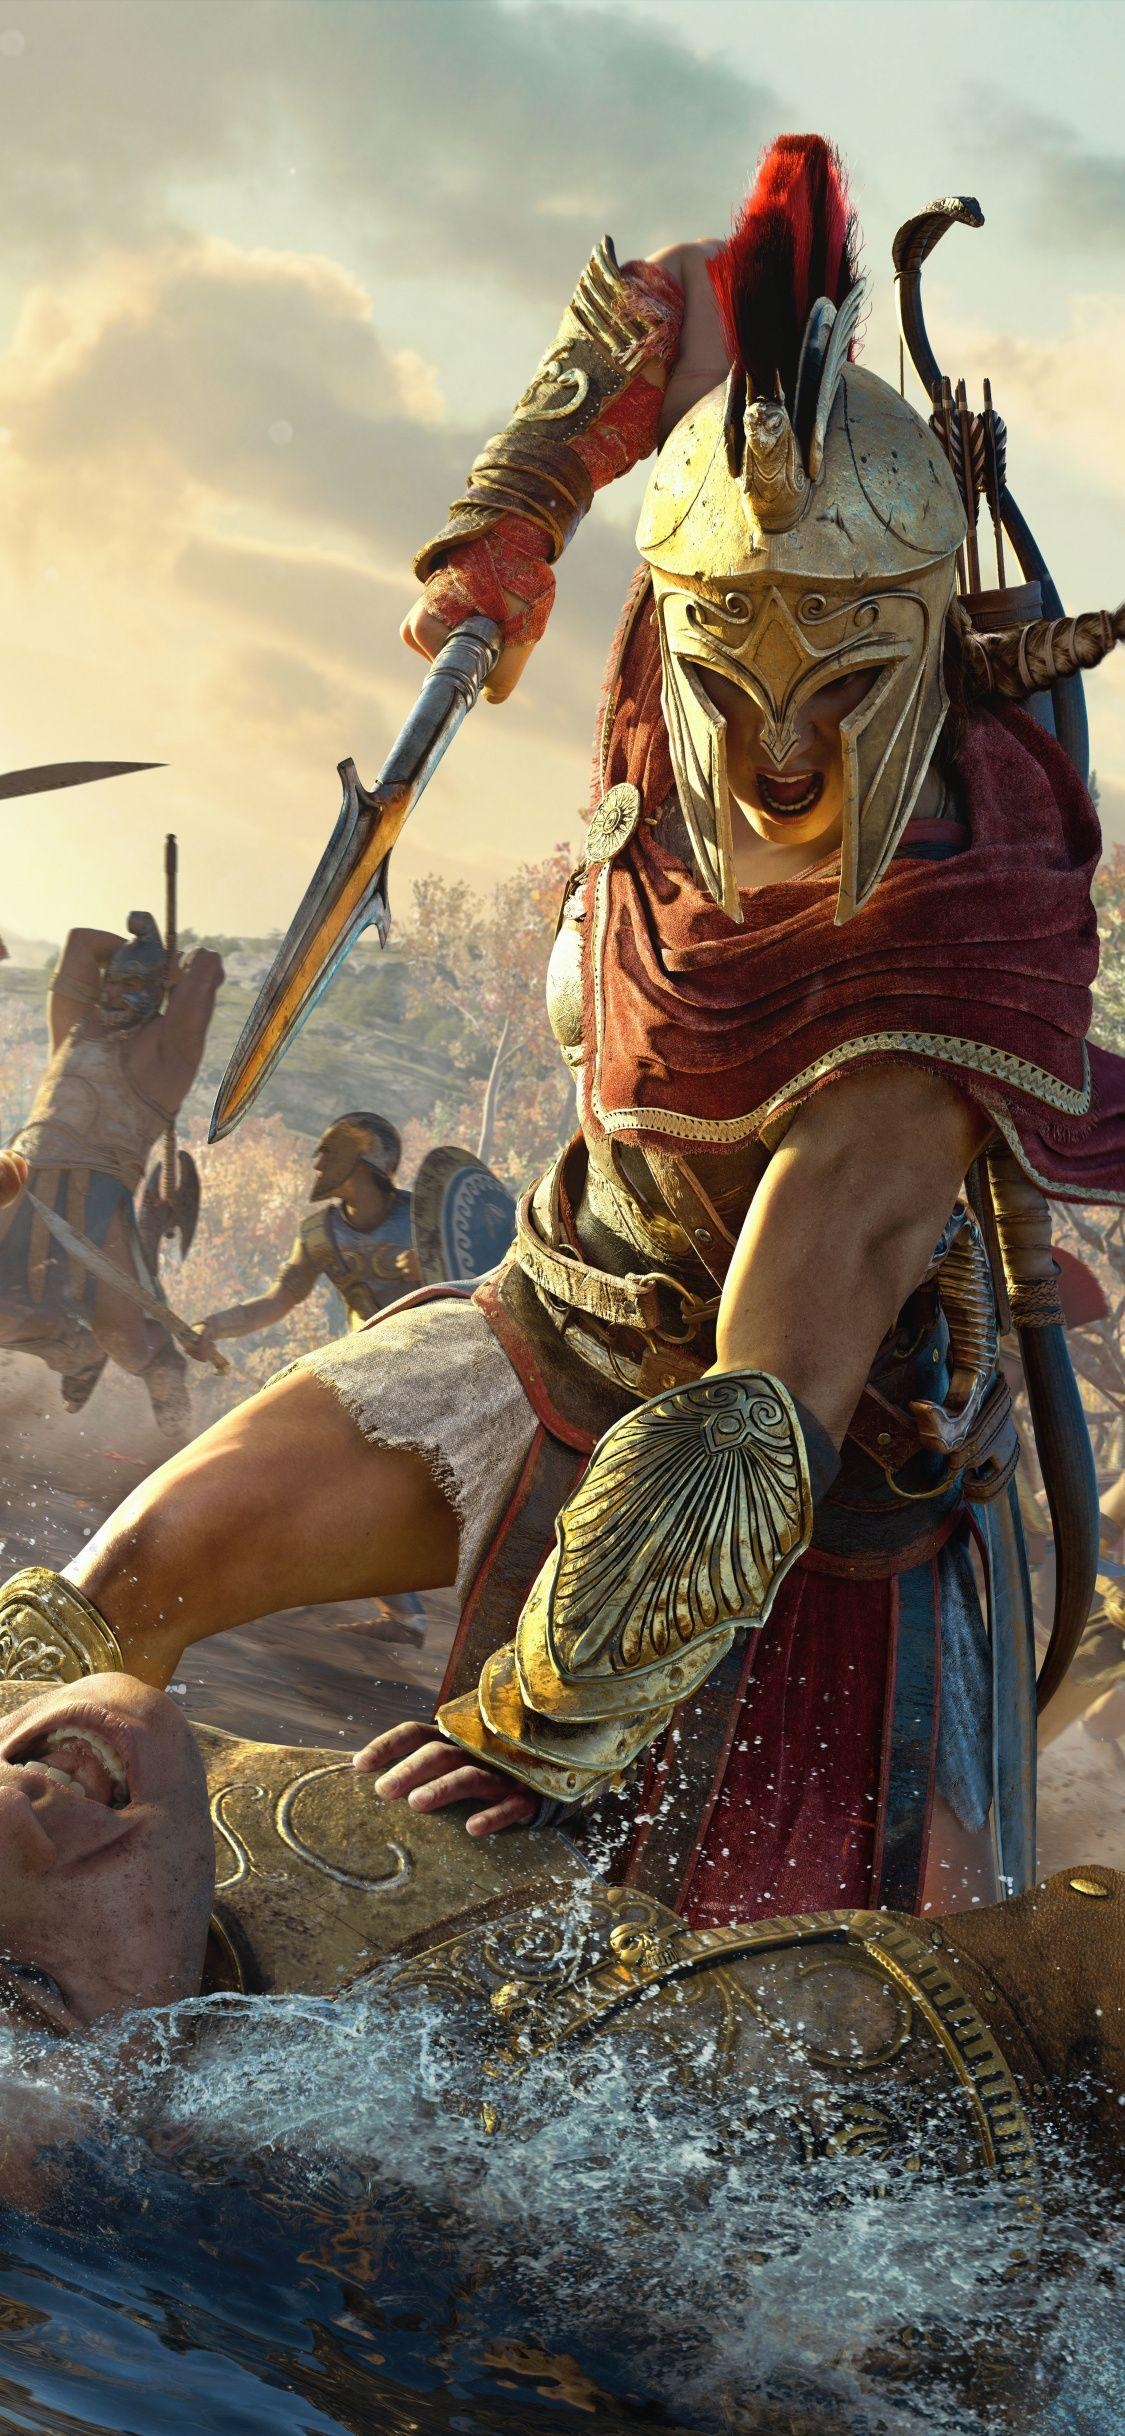 Assassin's Creed Odyssey Game Wallpapers - Wallpaper Cave